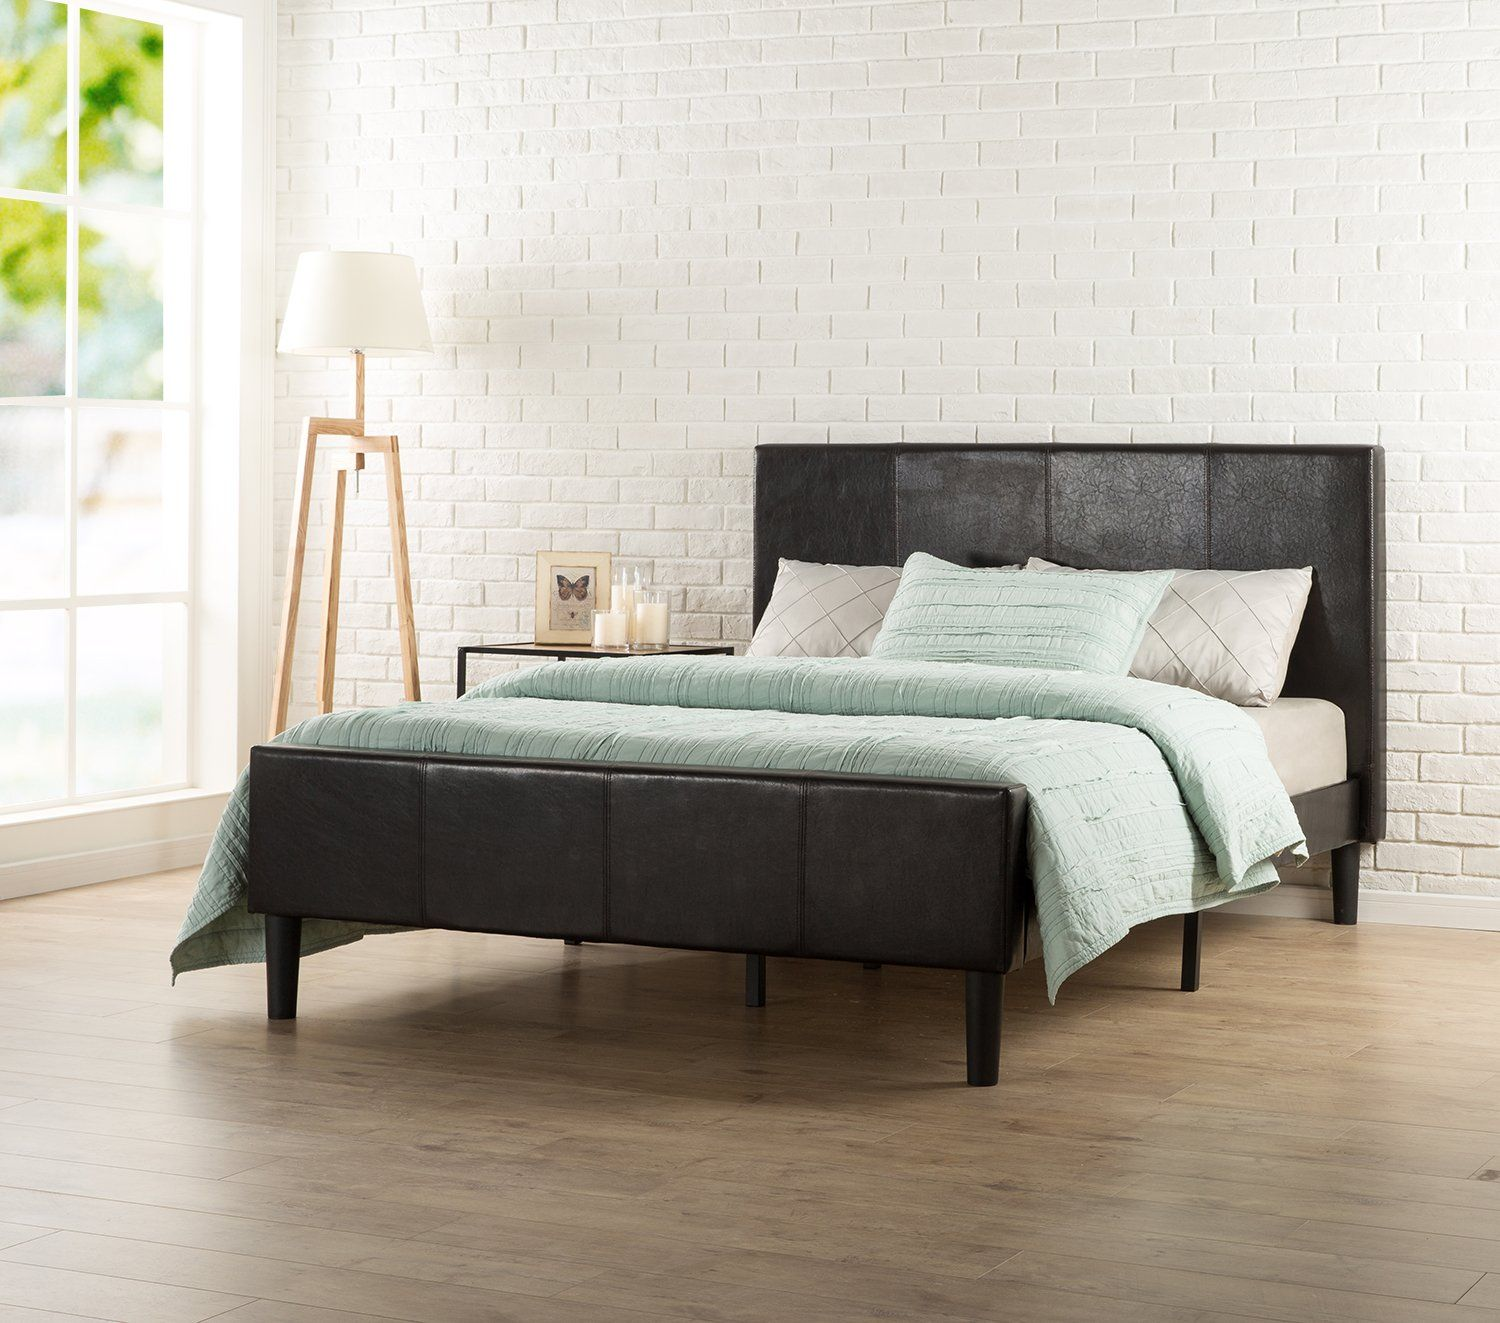 Delightful Amazon.com: Zinus Deluxe Faux Leather Platform Bed With Footboard And Wooden  Slats,